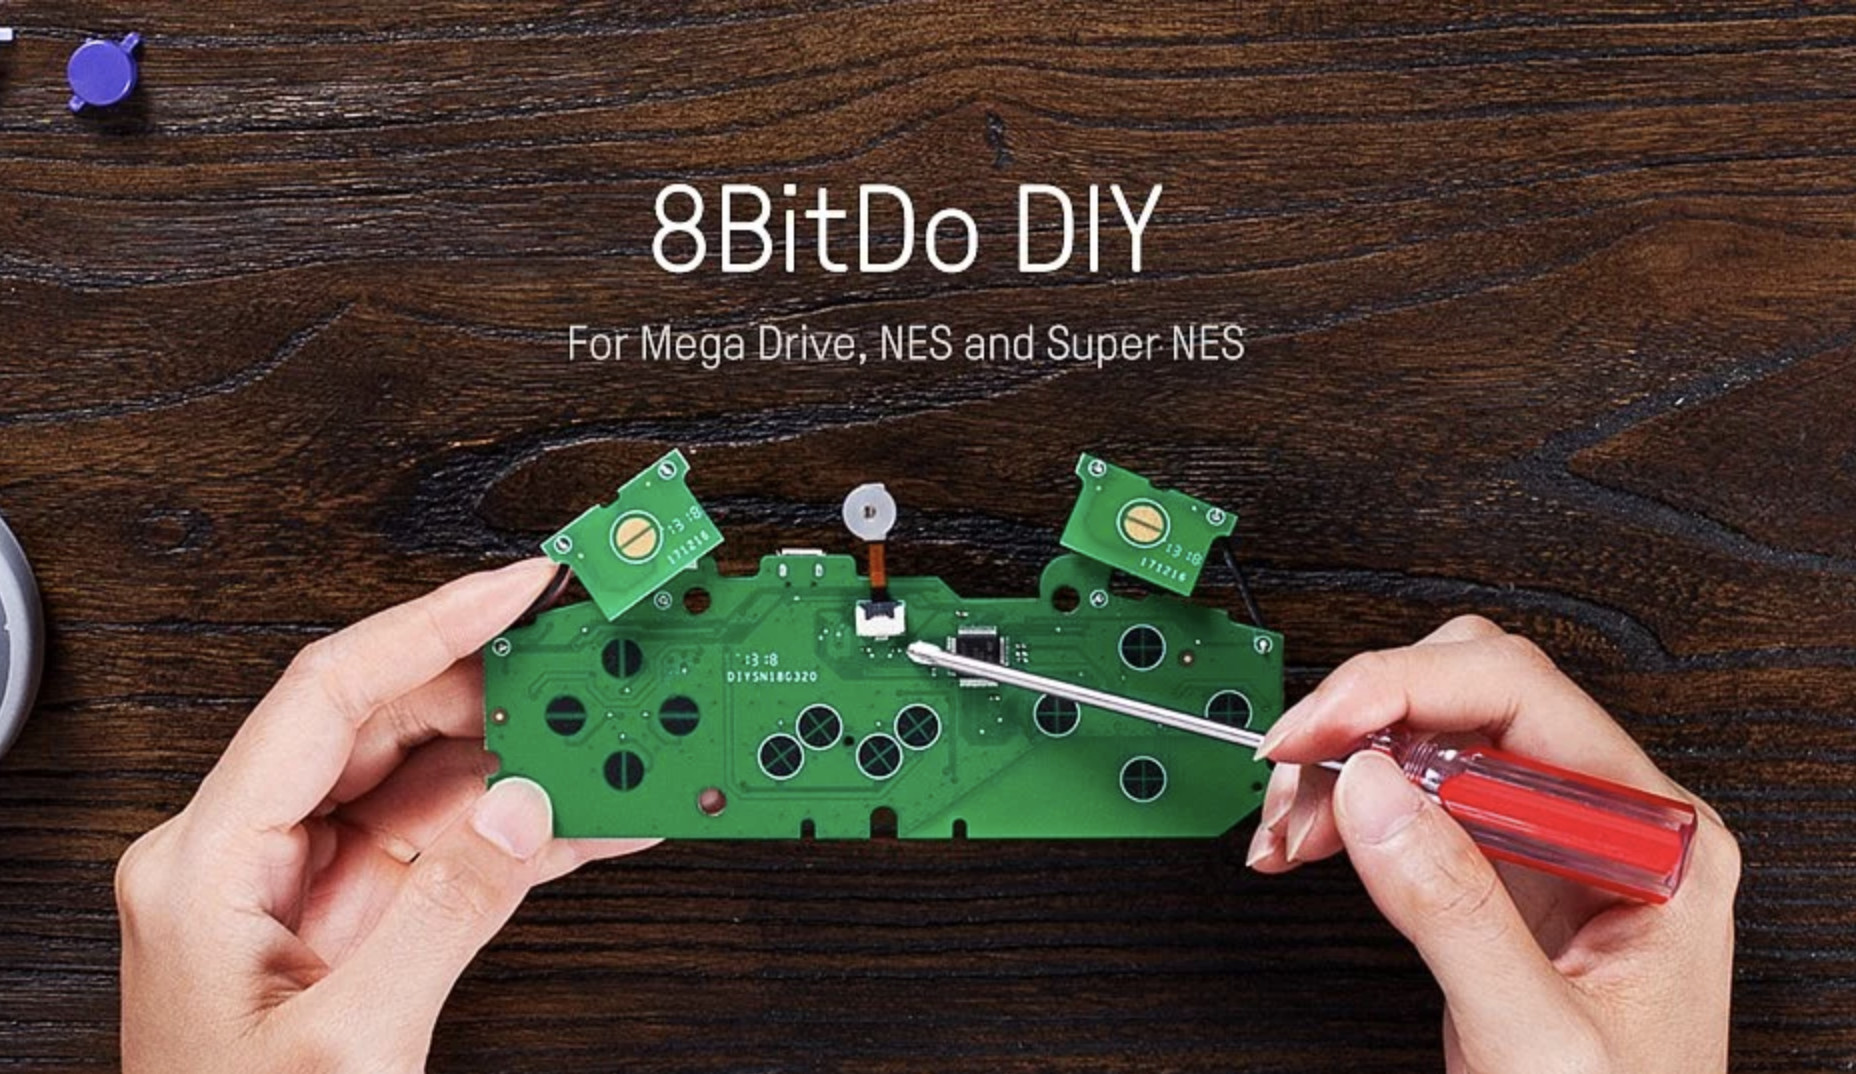 8bitdo breathes new life into old controllers, giving them the